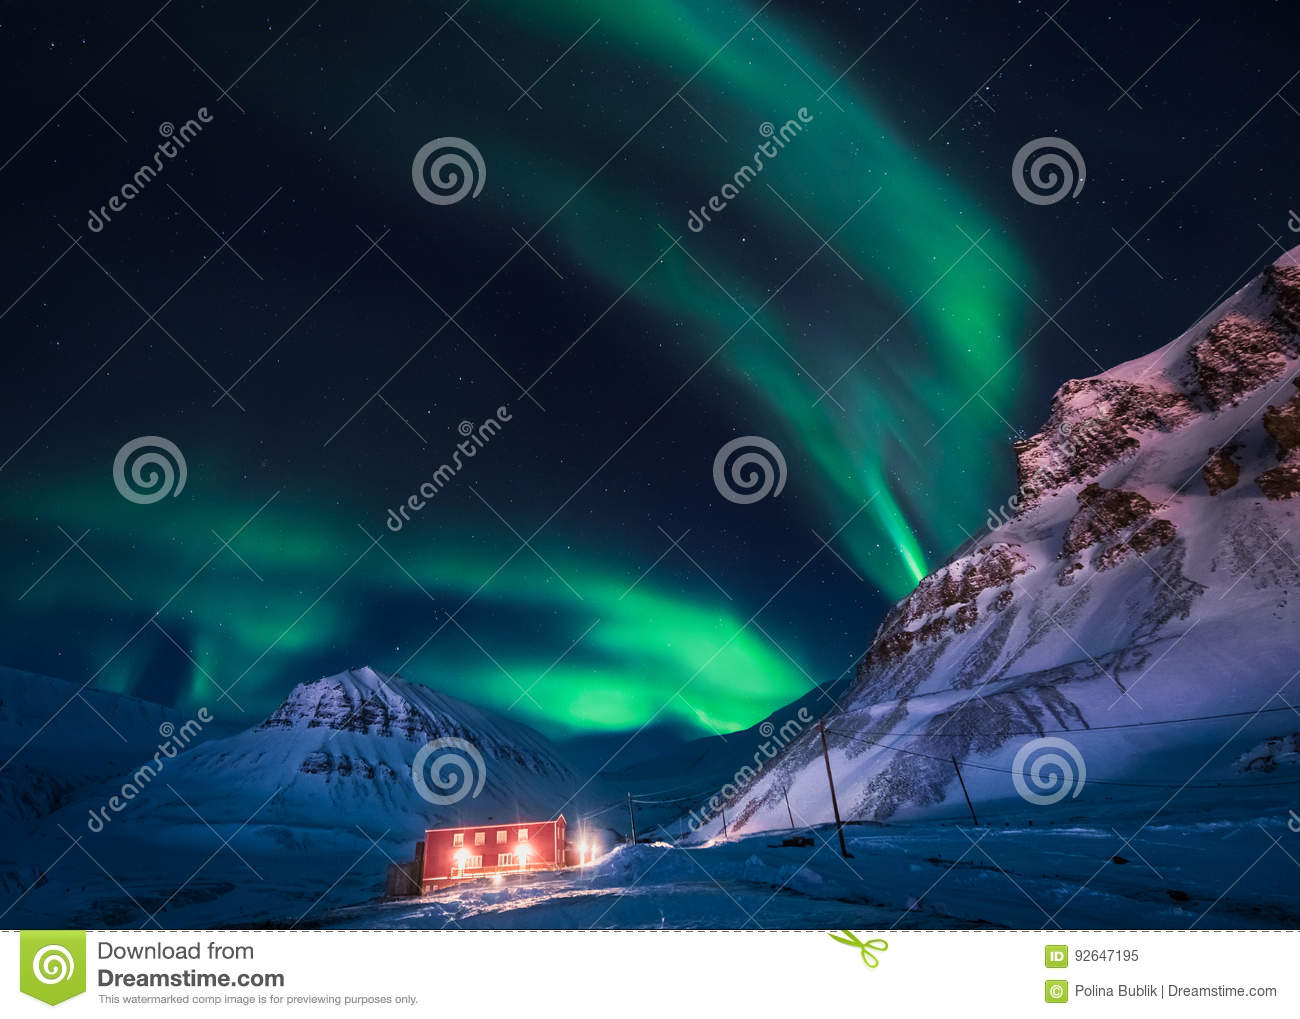 Northern lights in the mountains house of Svalbard, Longyearbyen city, Spitsbergen, Norway wallpaper